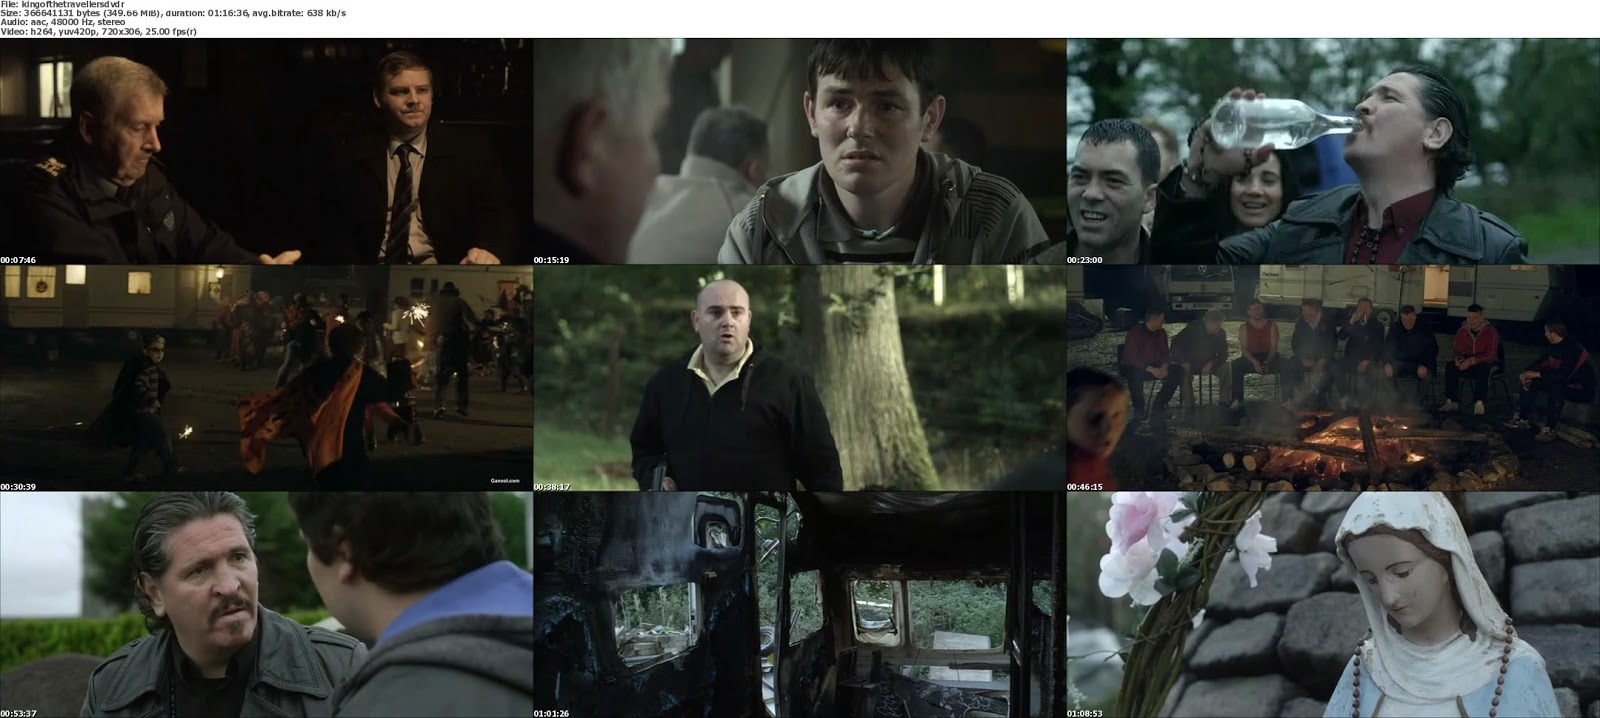 movie screenshot of King of the Travellers fdmovie.com